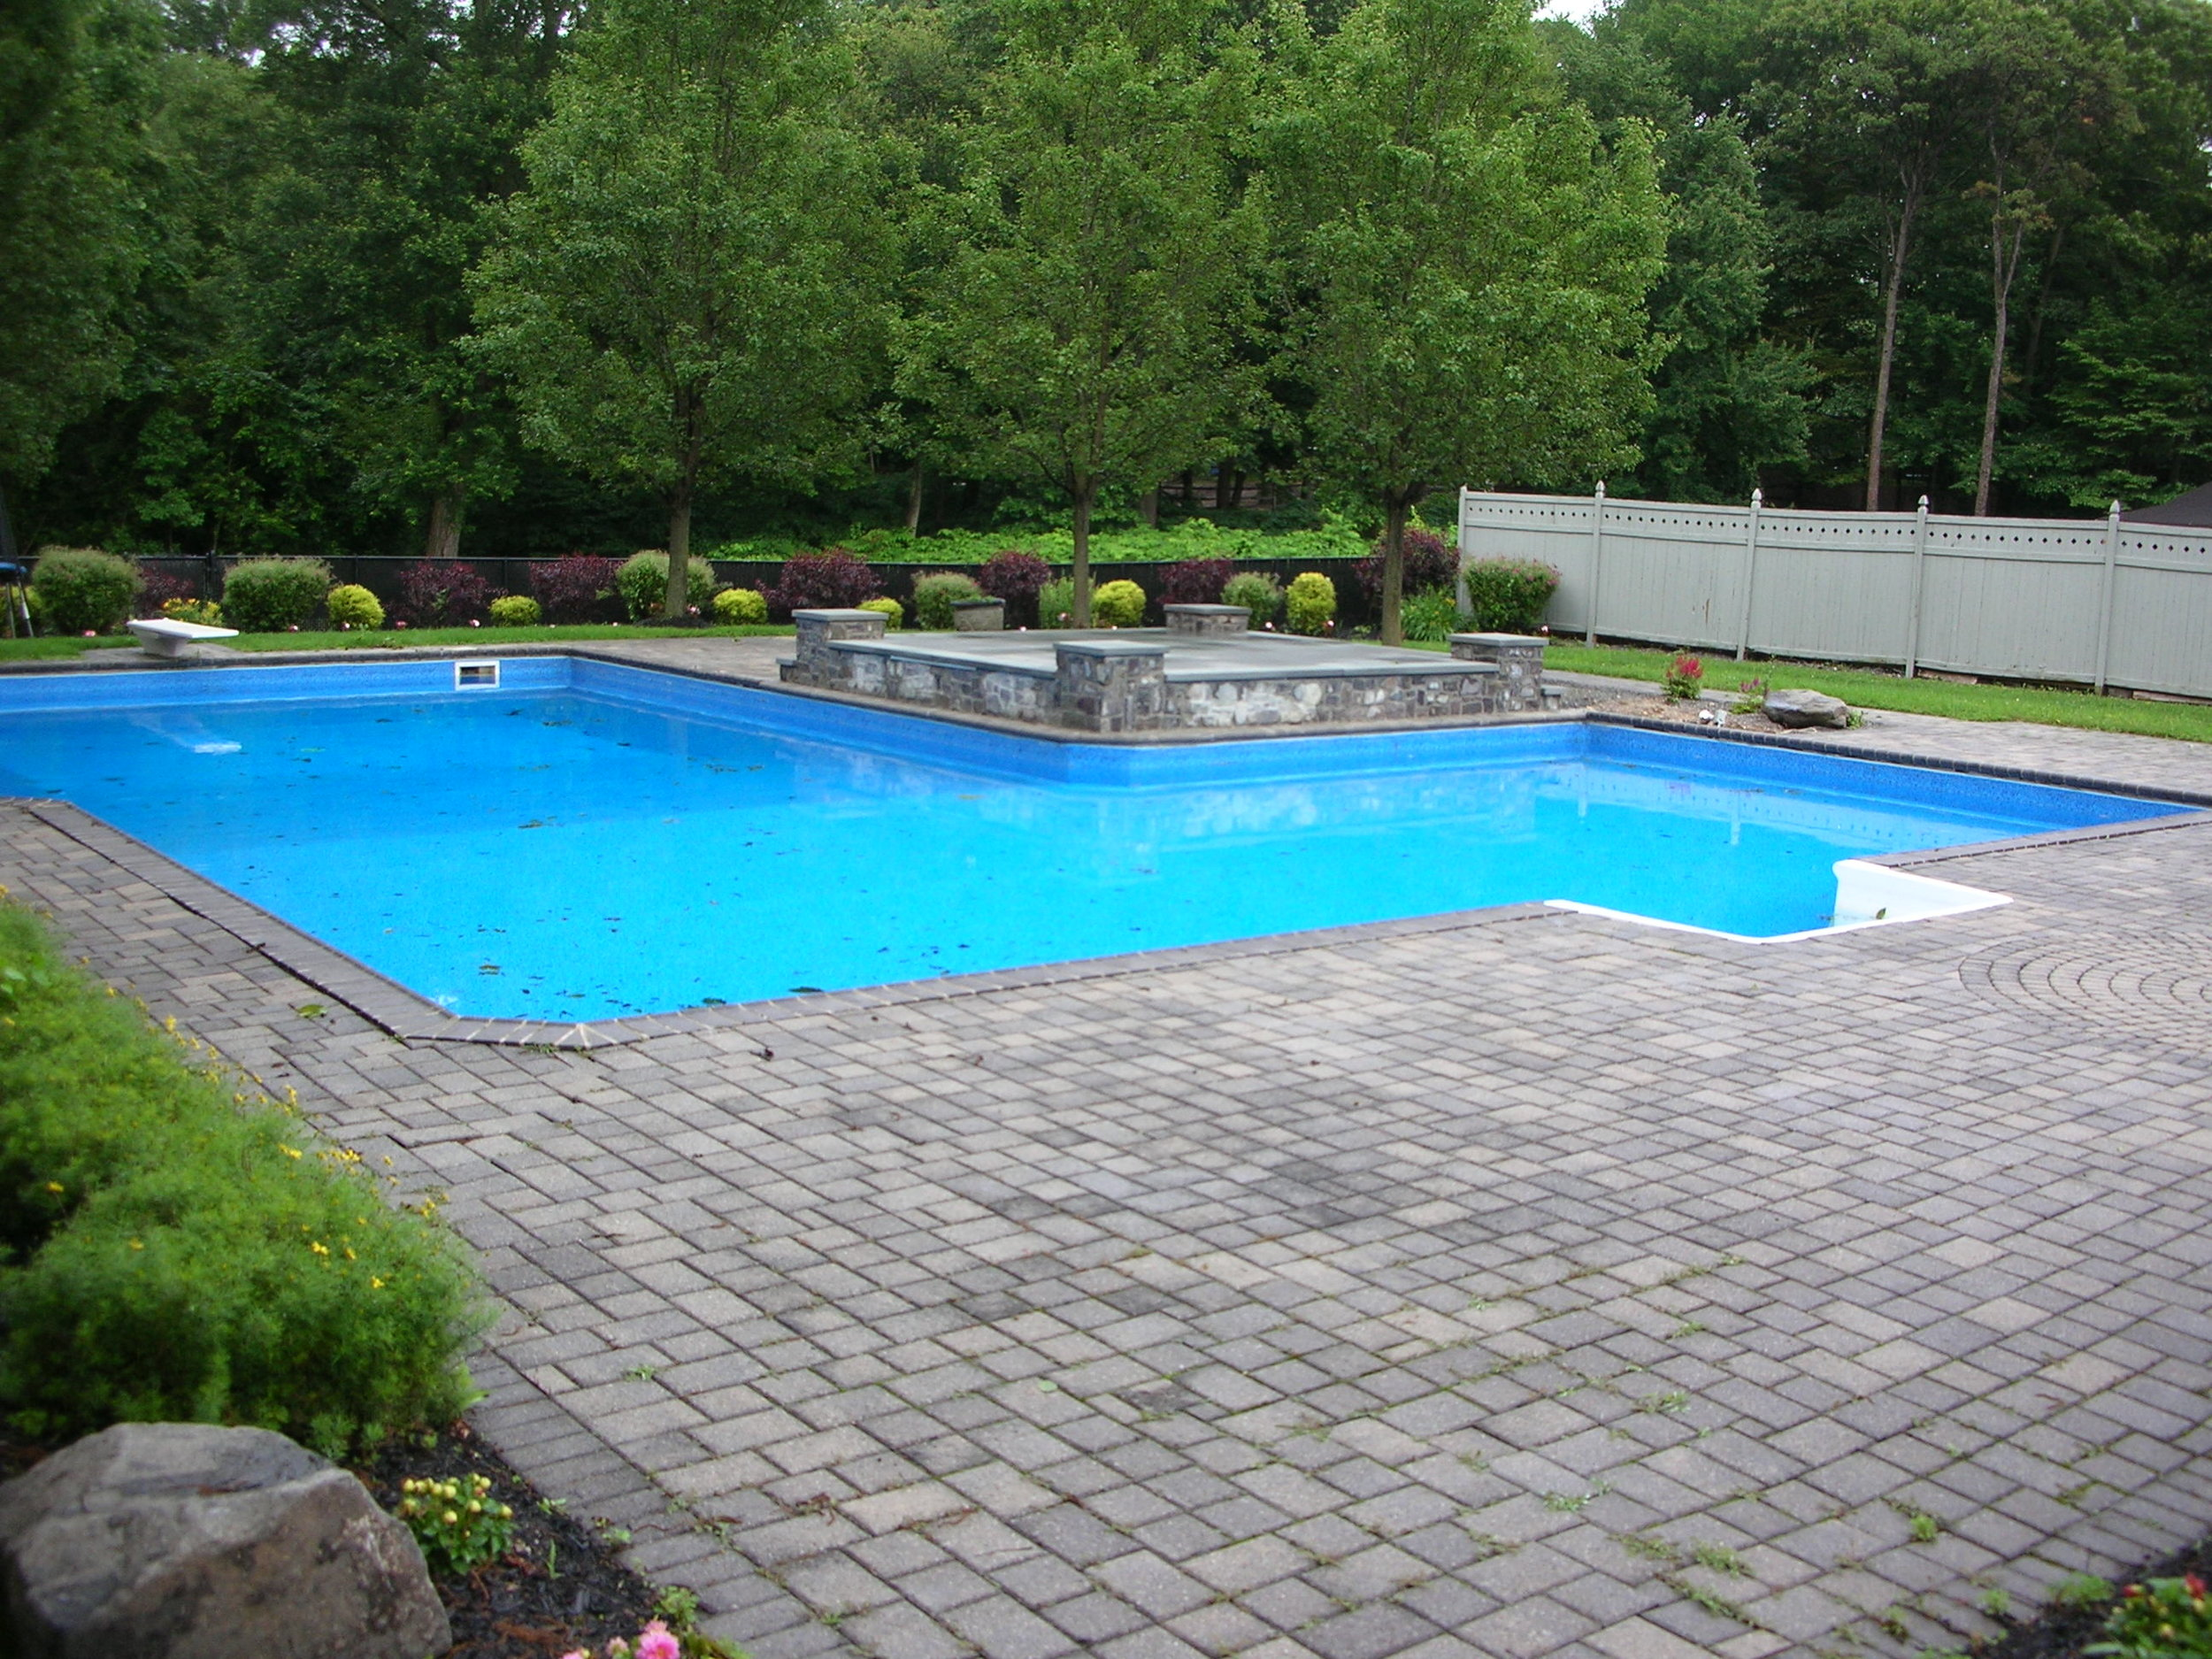 Professional patio paver design company in Long Island, NY